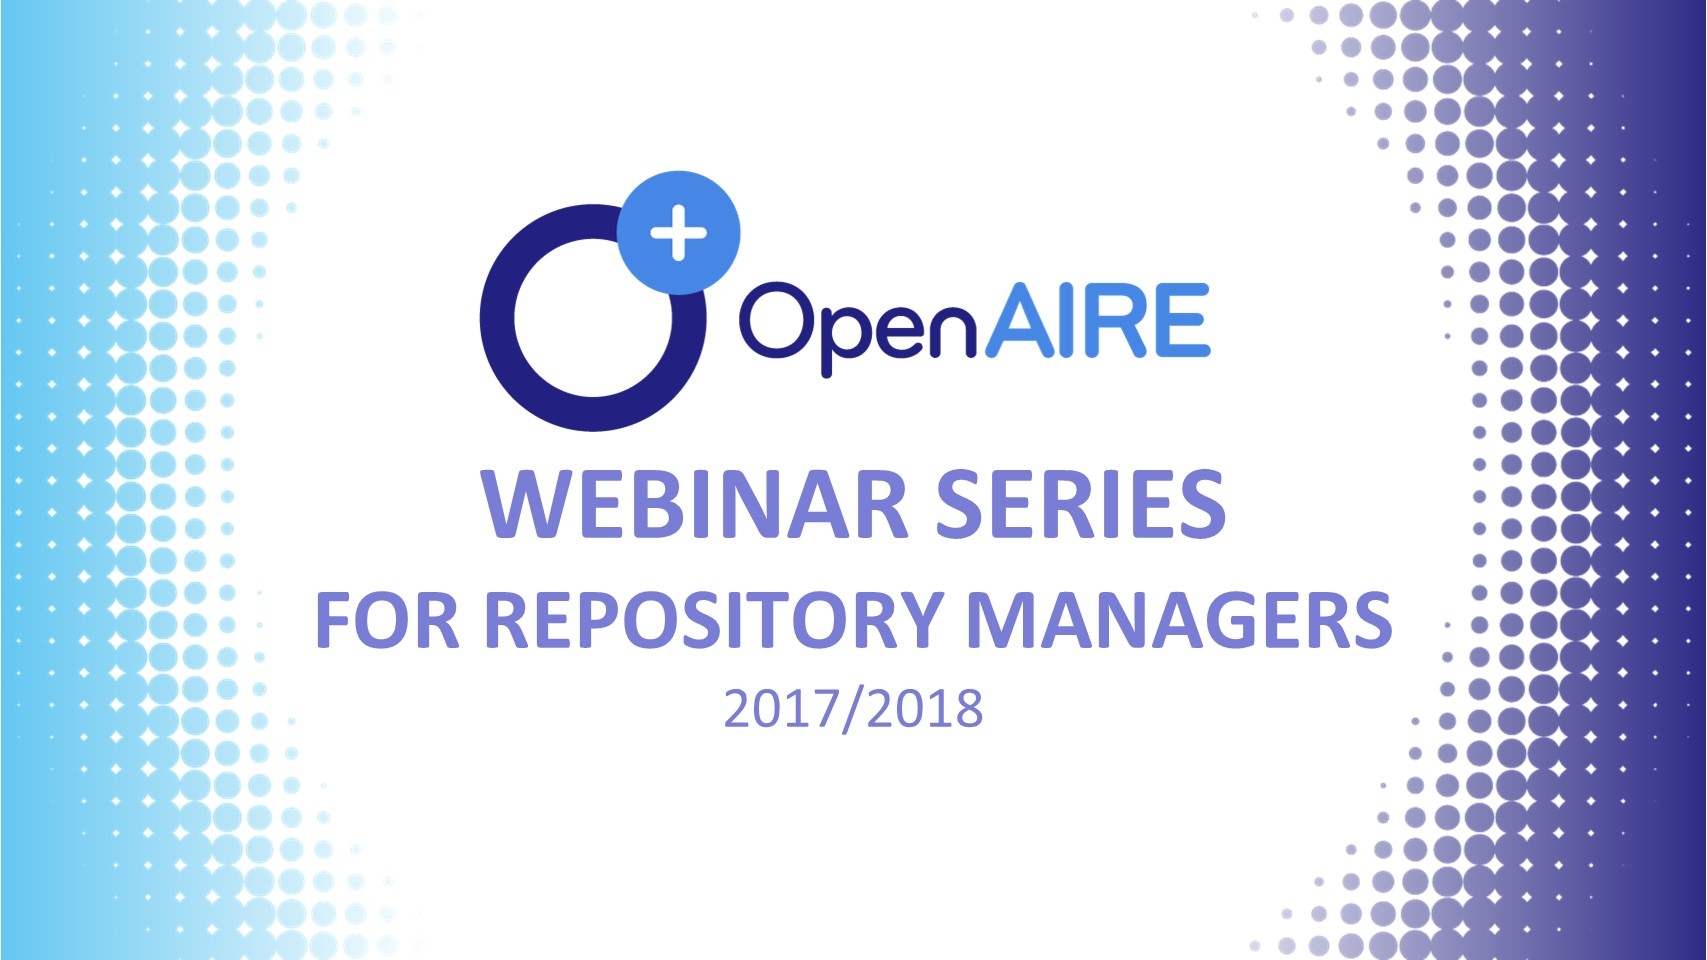 webinar series repomanagers